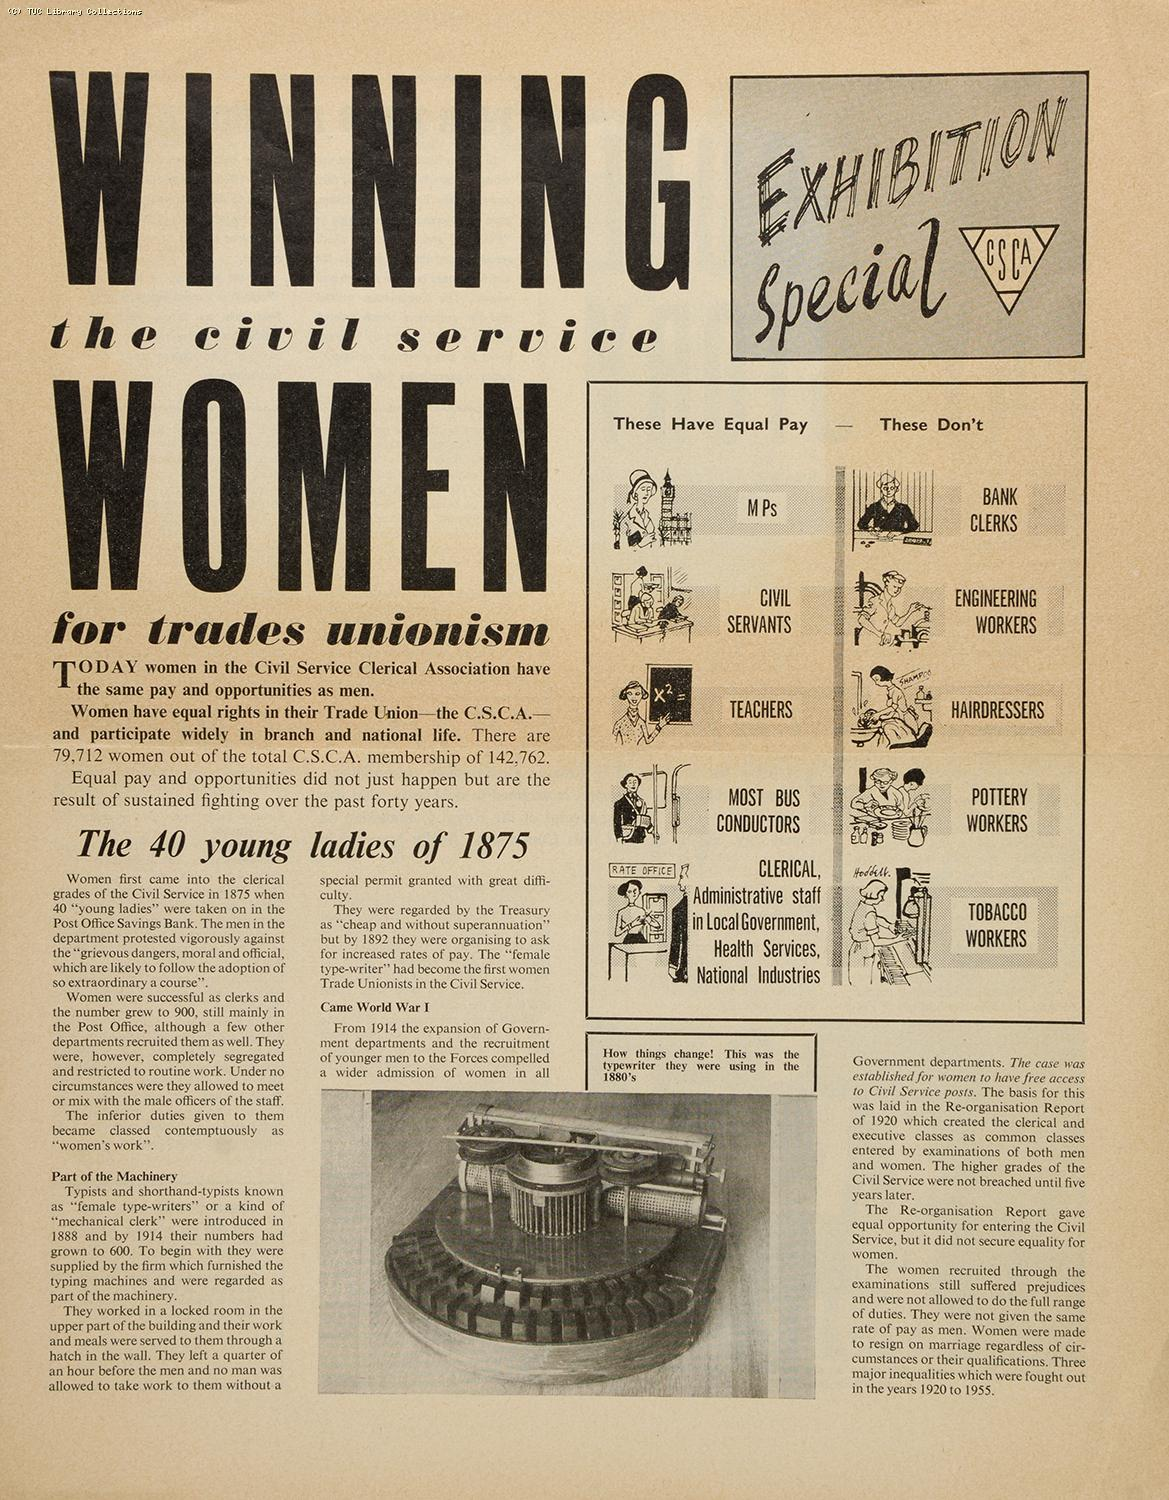 'With Women's Hands' Exhibition 1962